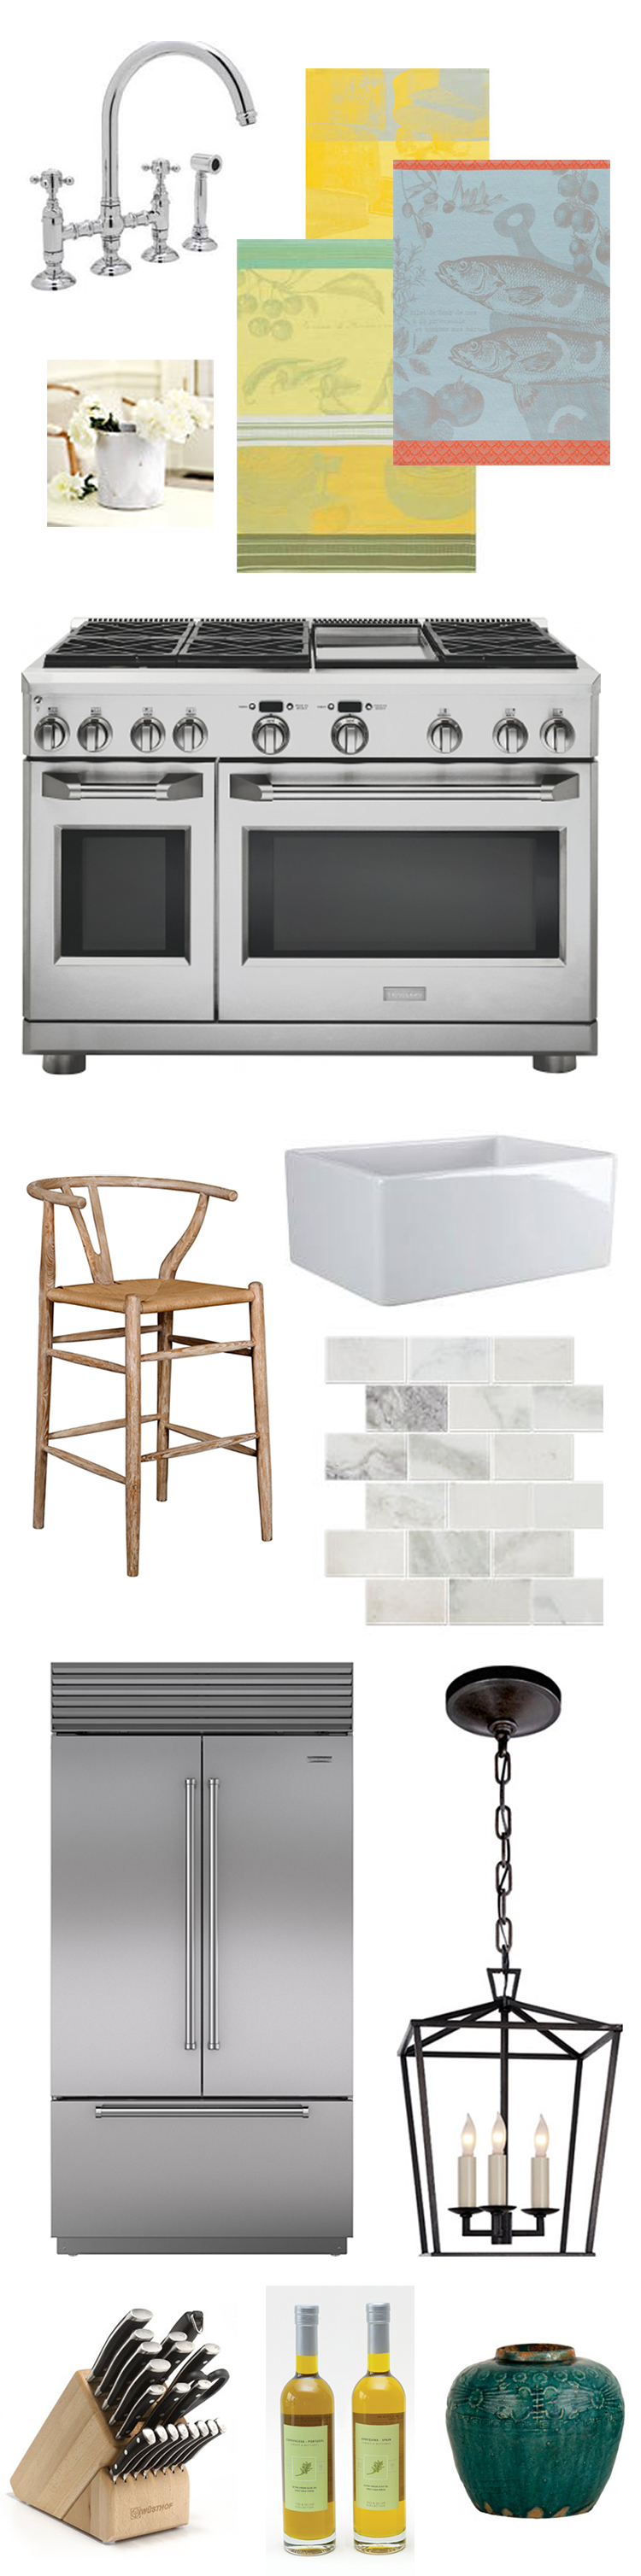 mood board for scovell wolfe kitchen remodel